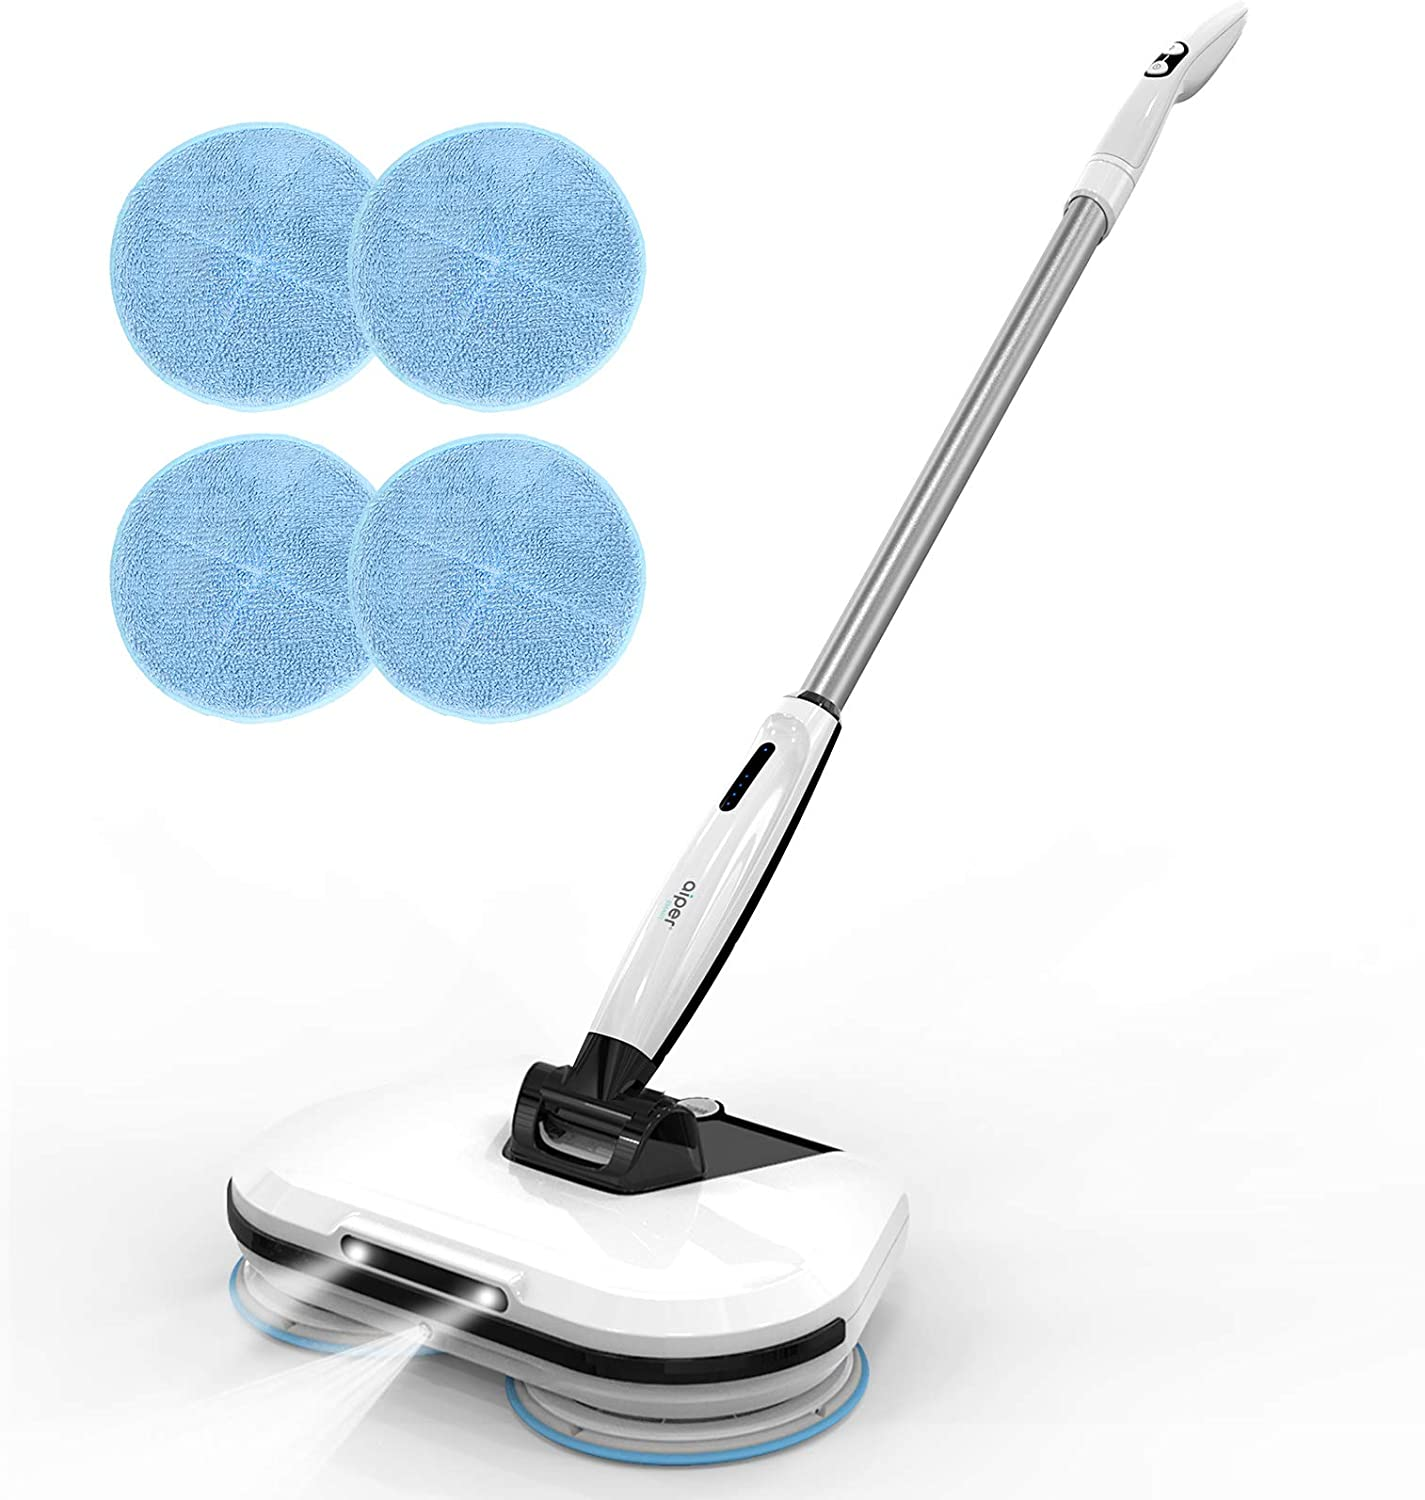 AIPER SMART Cordless At the price of surprise Electric Spin Mop with Headlight Hardw LED Topics on TV